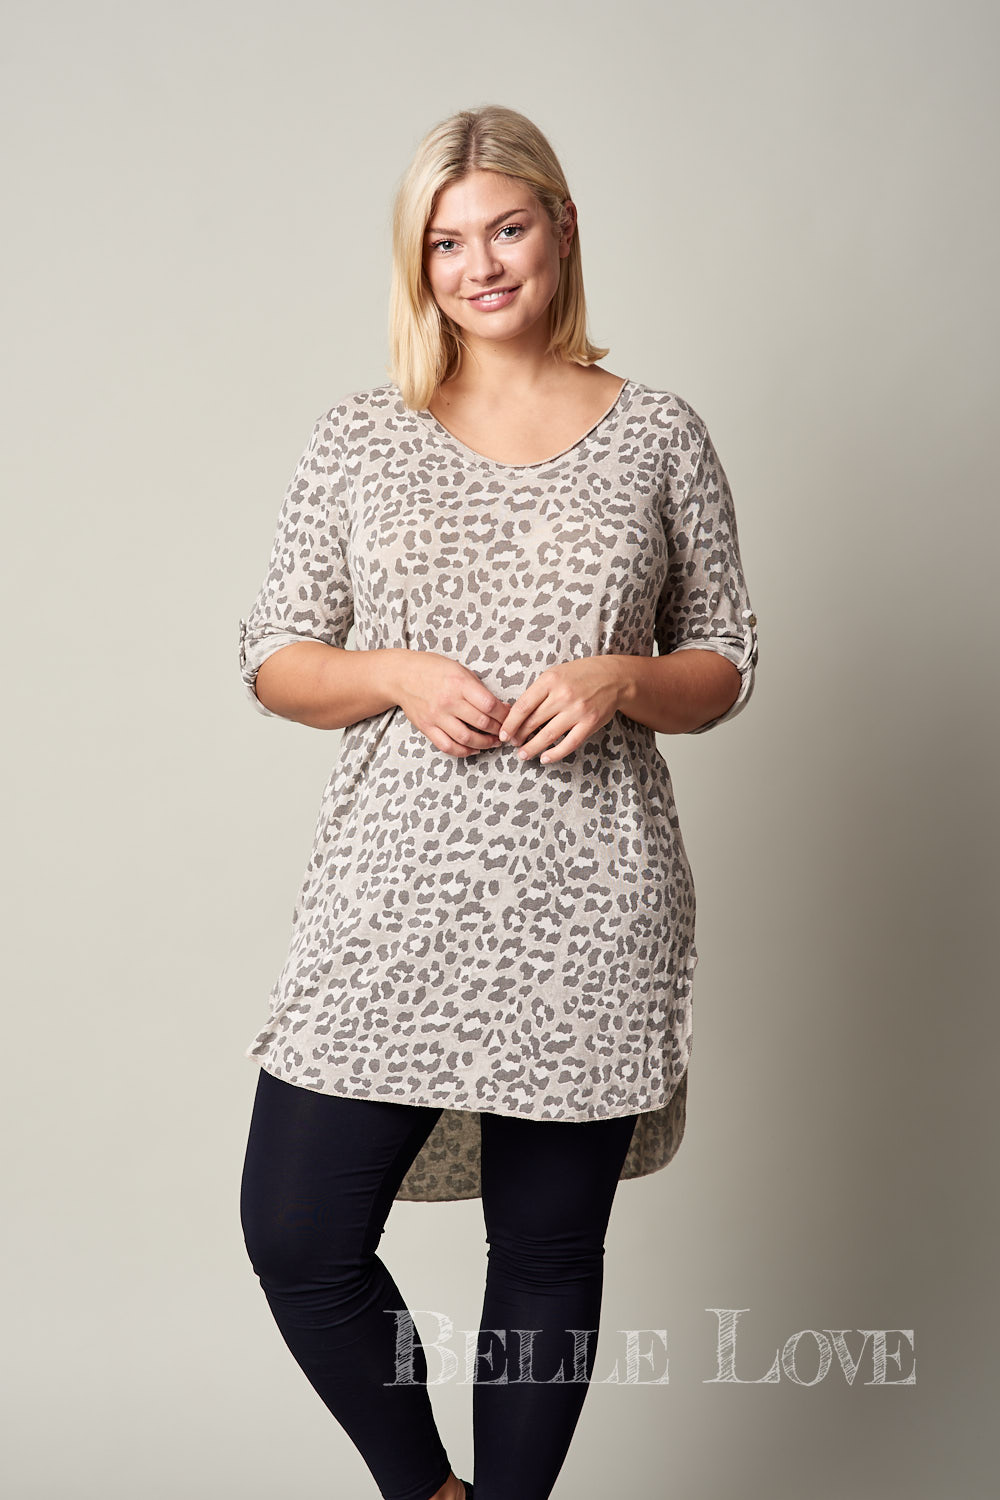 Belle Love Italy Casual Leopard Print Top